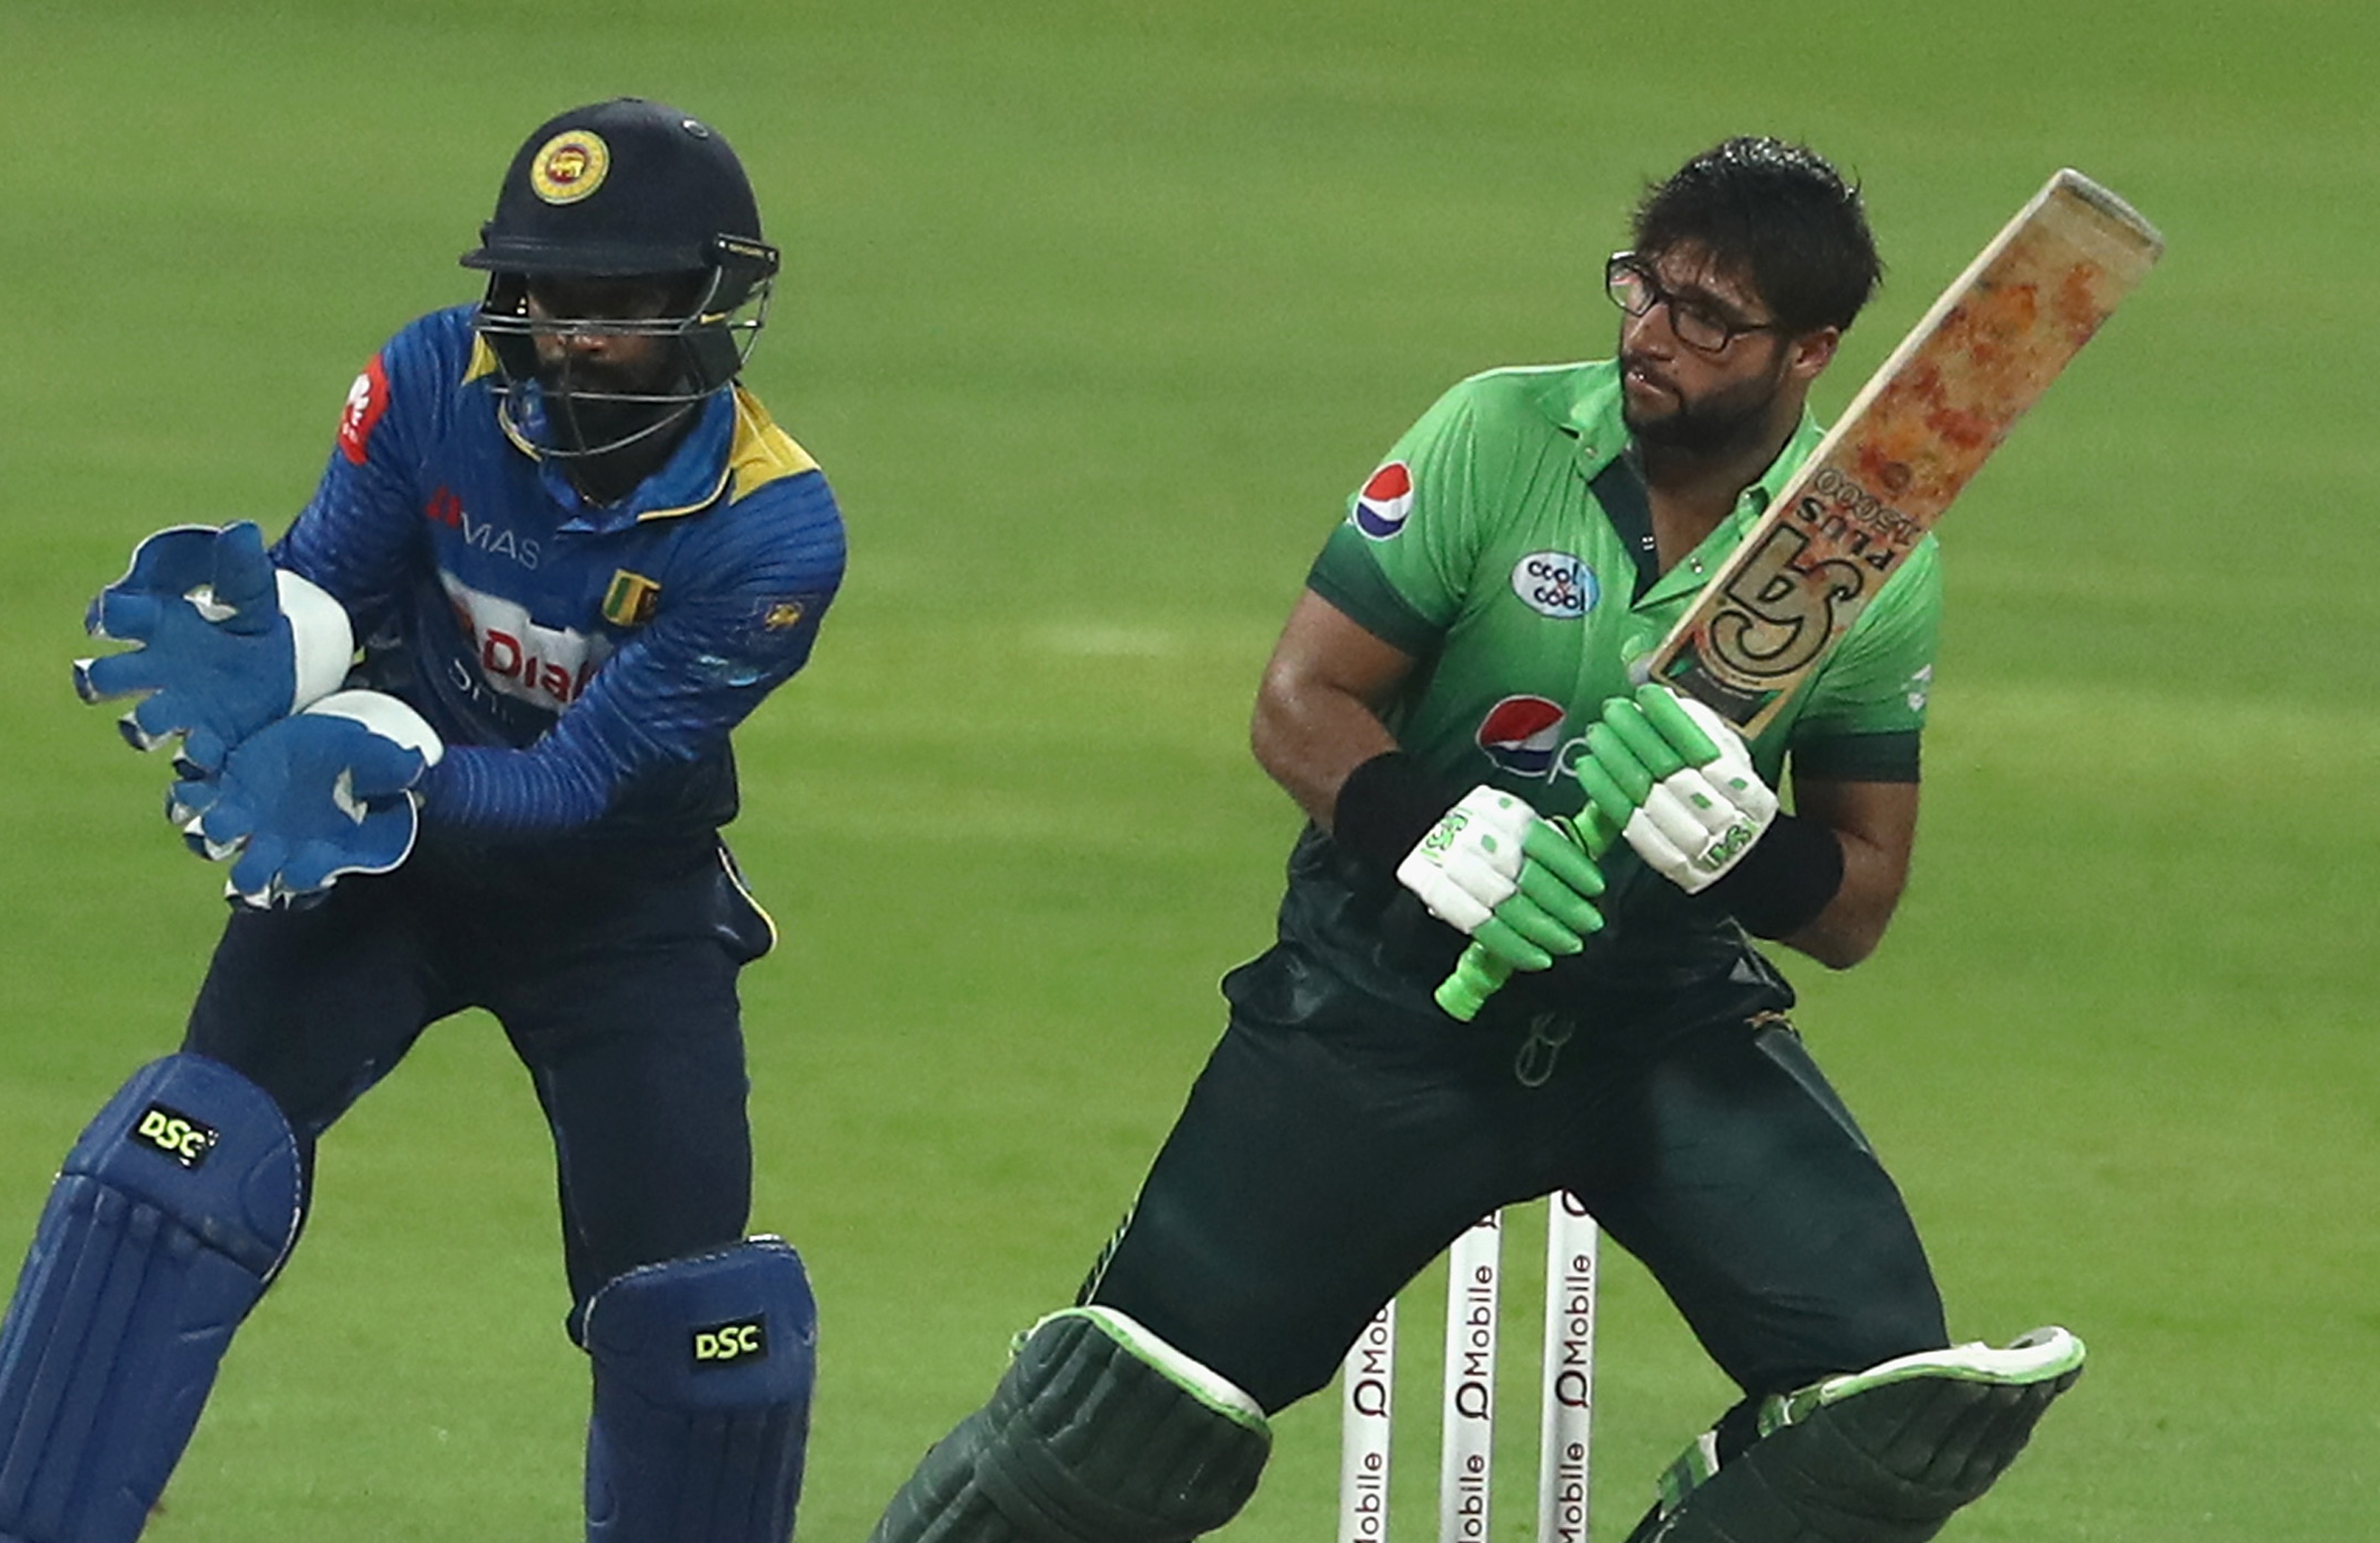 Imam in action for Pakistan // Getty